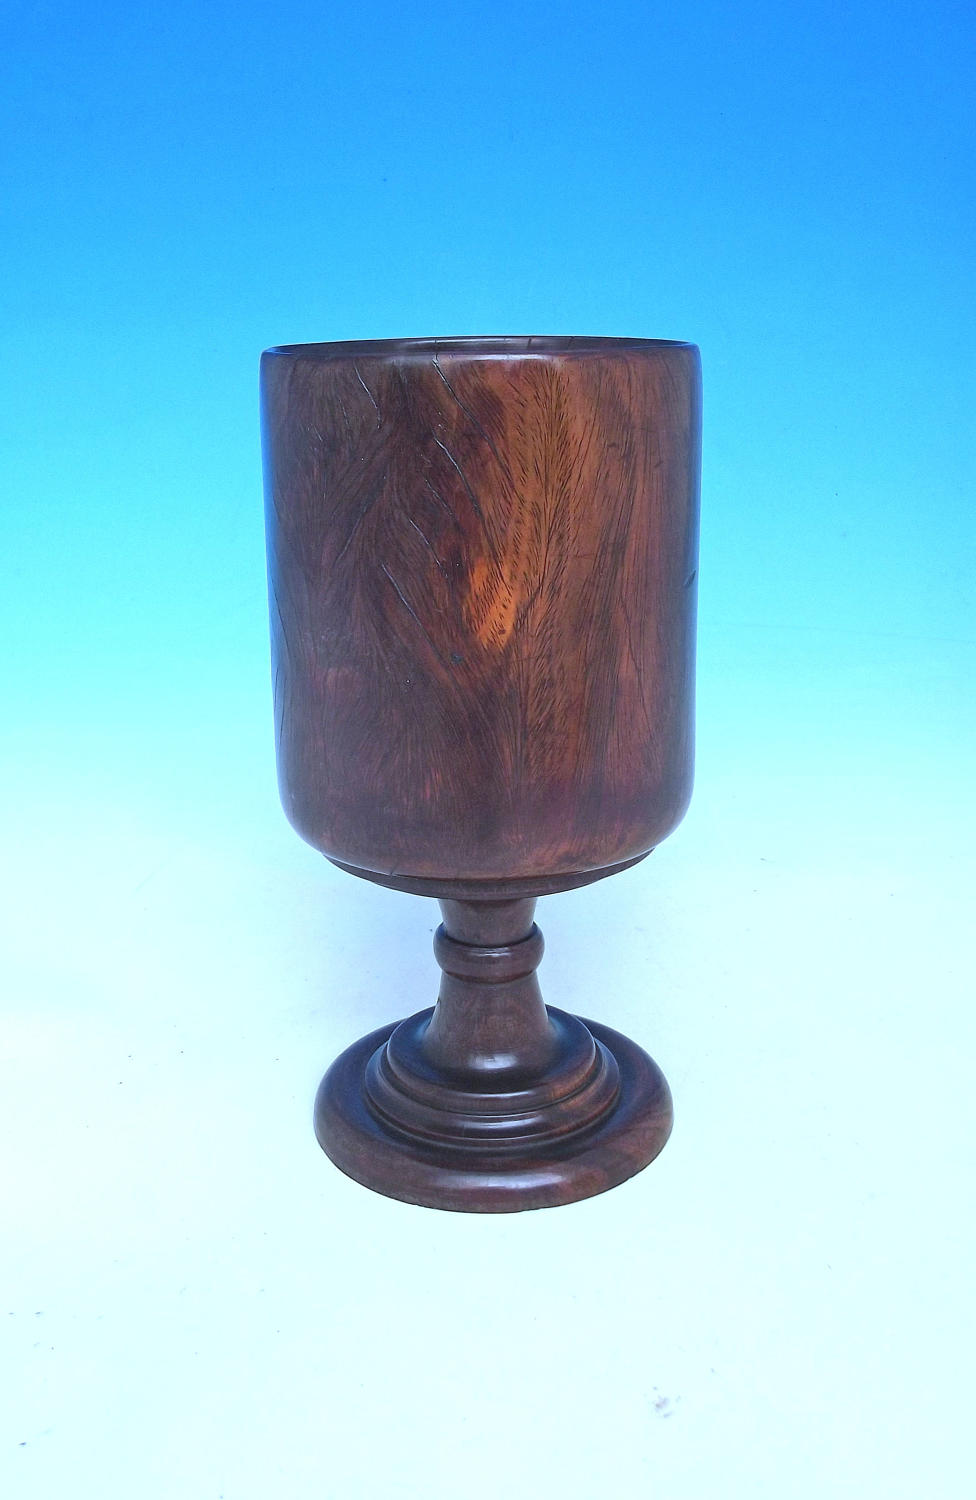 Antique Treen 18thc Lignum Vitae Drinking Goblet. English. C1770-90